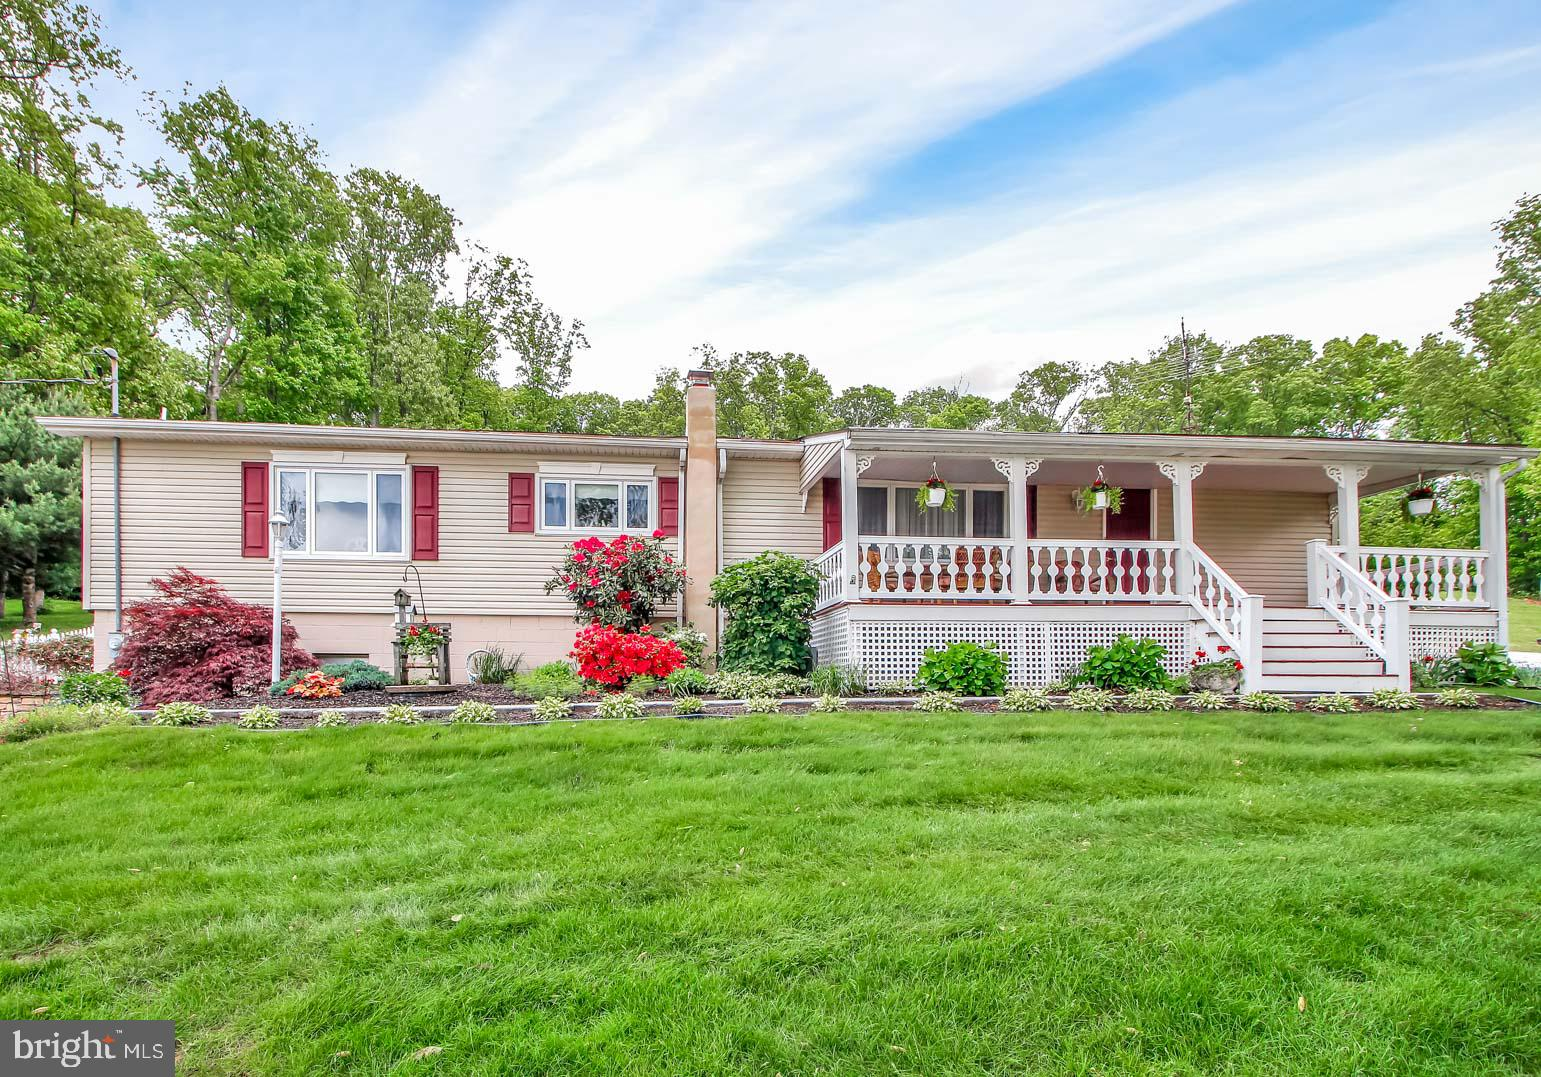 11177 GLEN VALLEY ROAD, GLEN ROCK, PA 17327